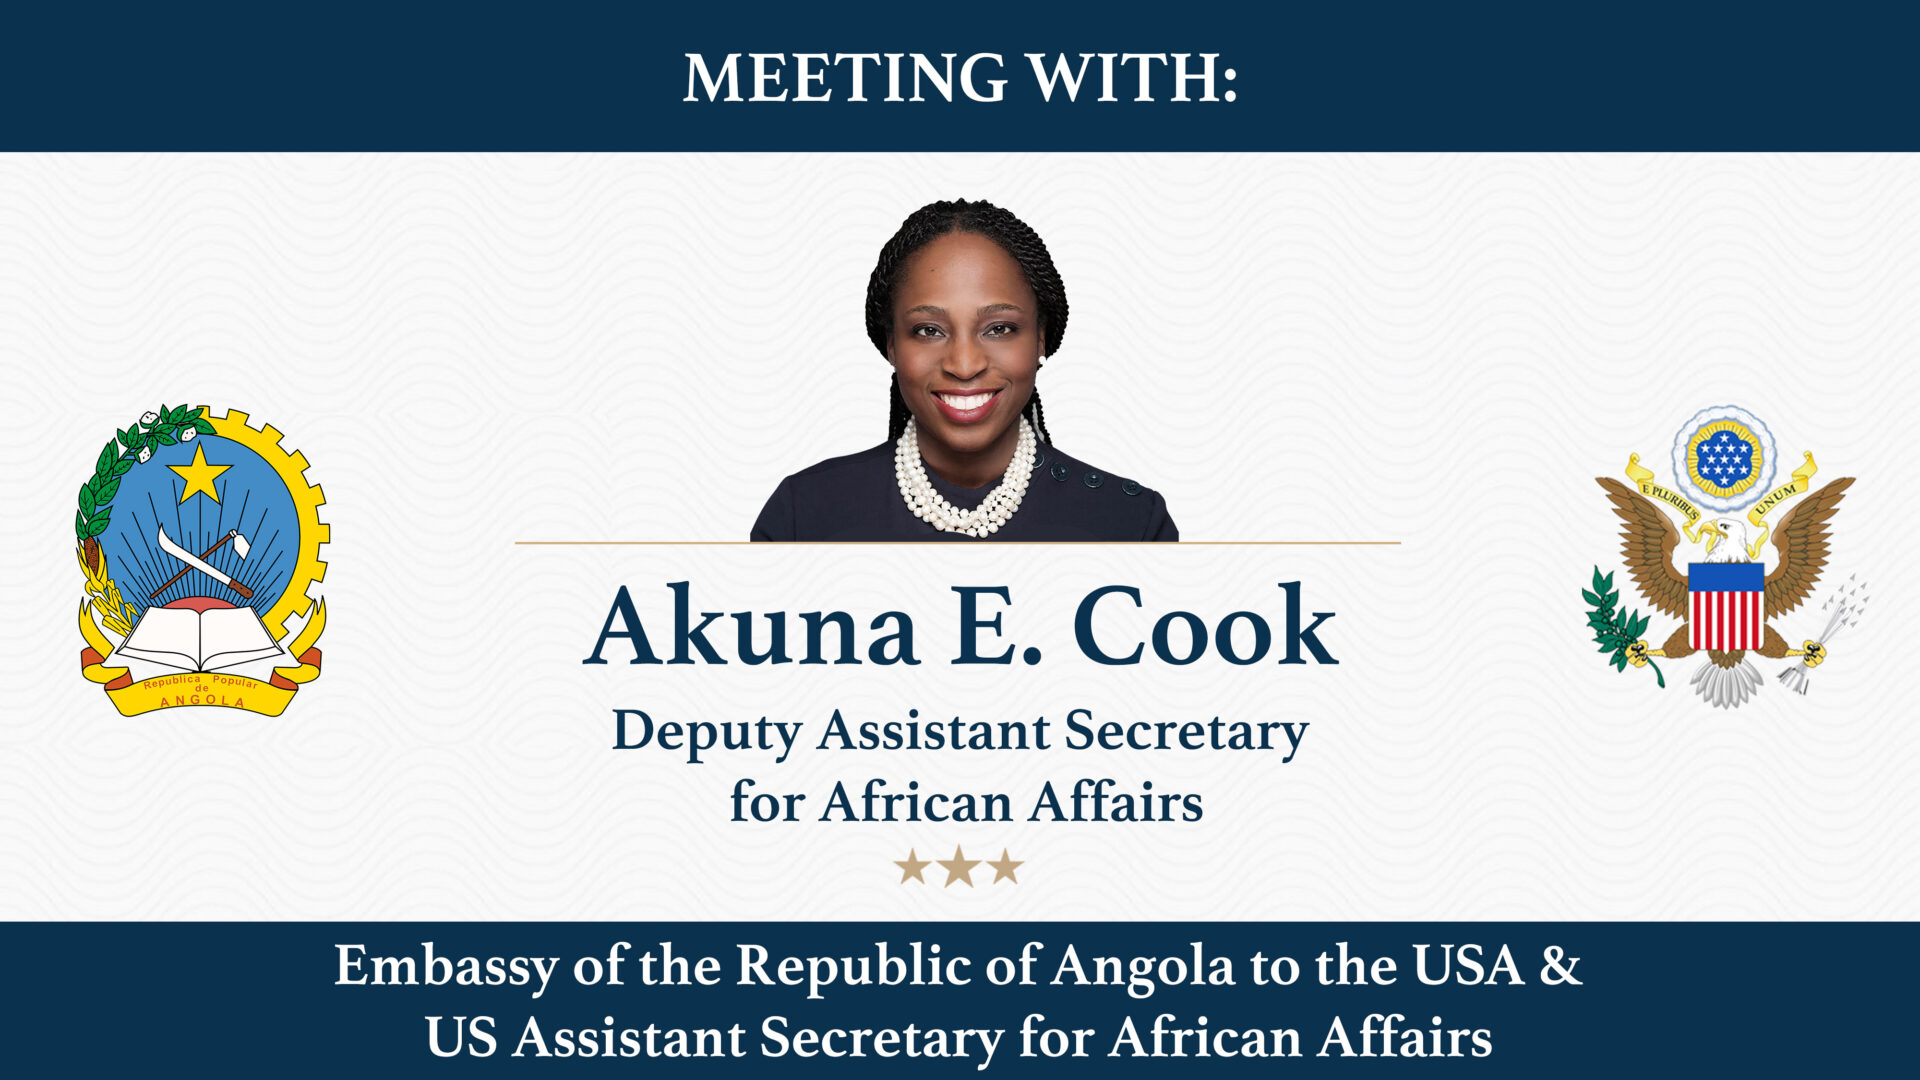 Meeting with US Assistant Secretary for African Affairs